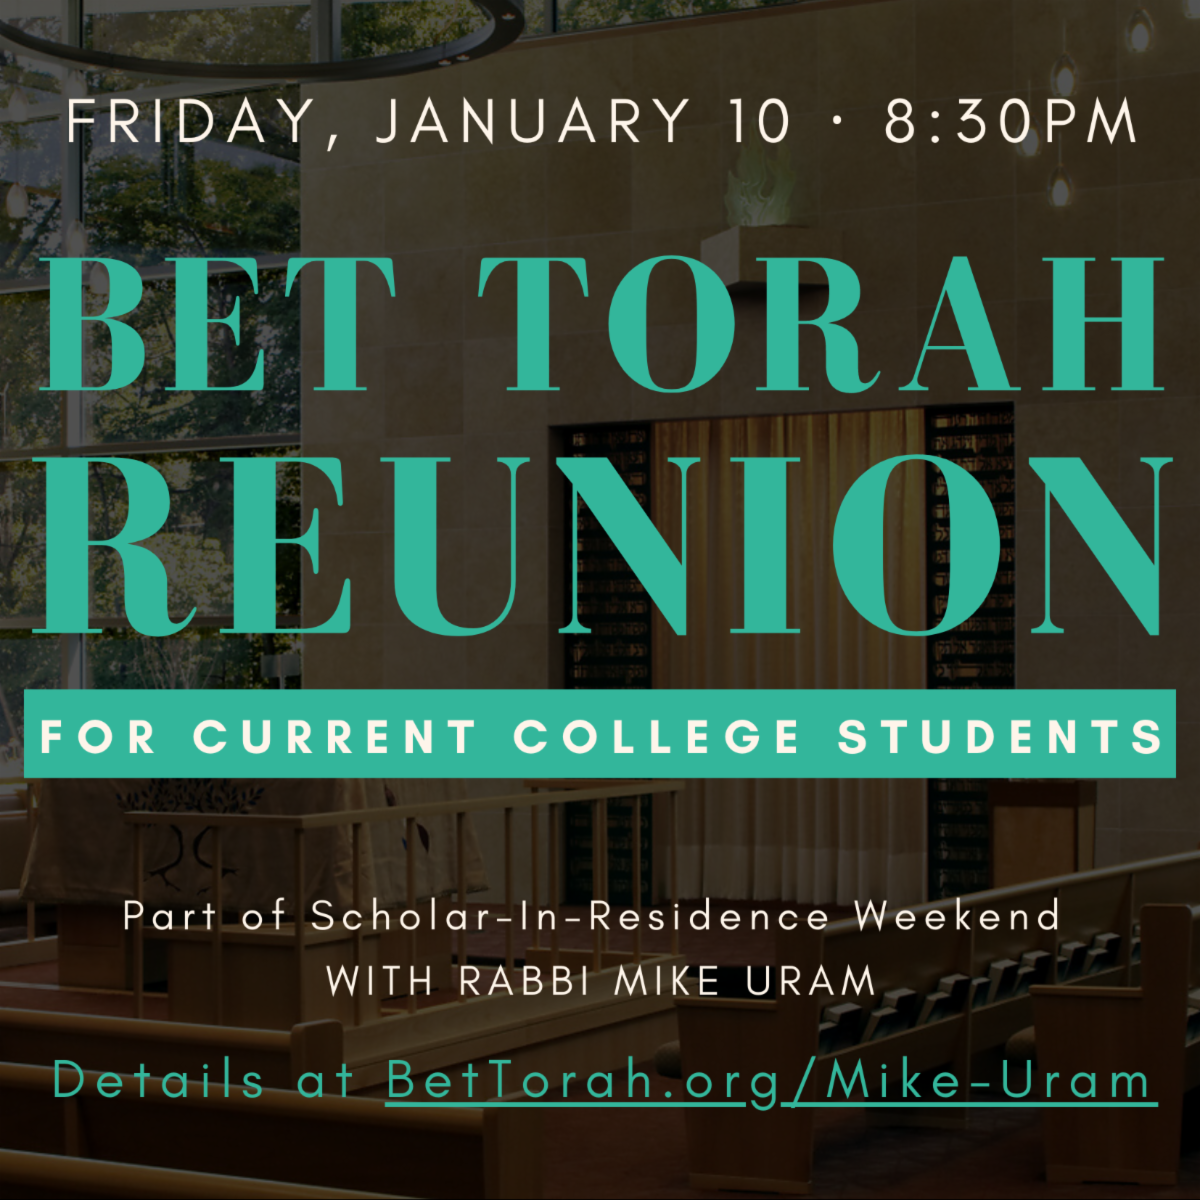 Friday, January 10 - 8:30 Bet Torah Reunion  For Current College Students  Details at BetTorah.org/Mike-Uram